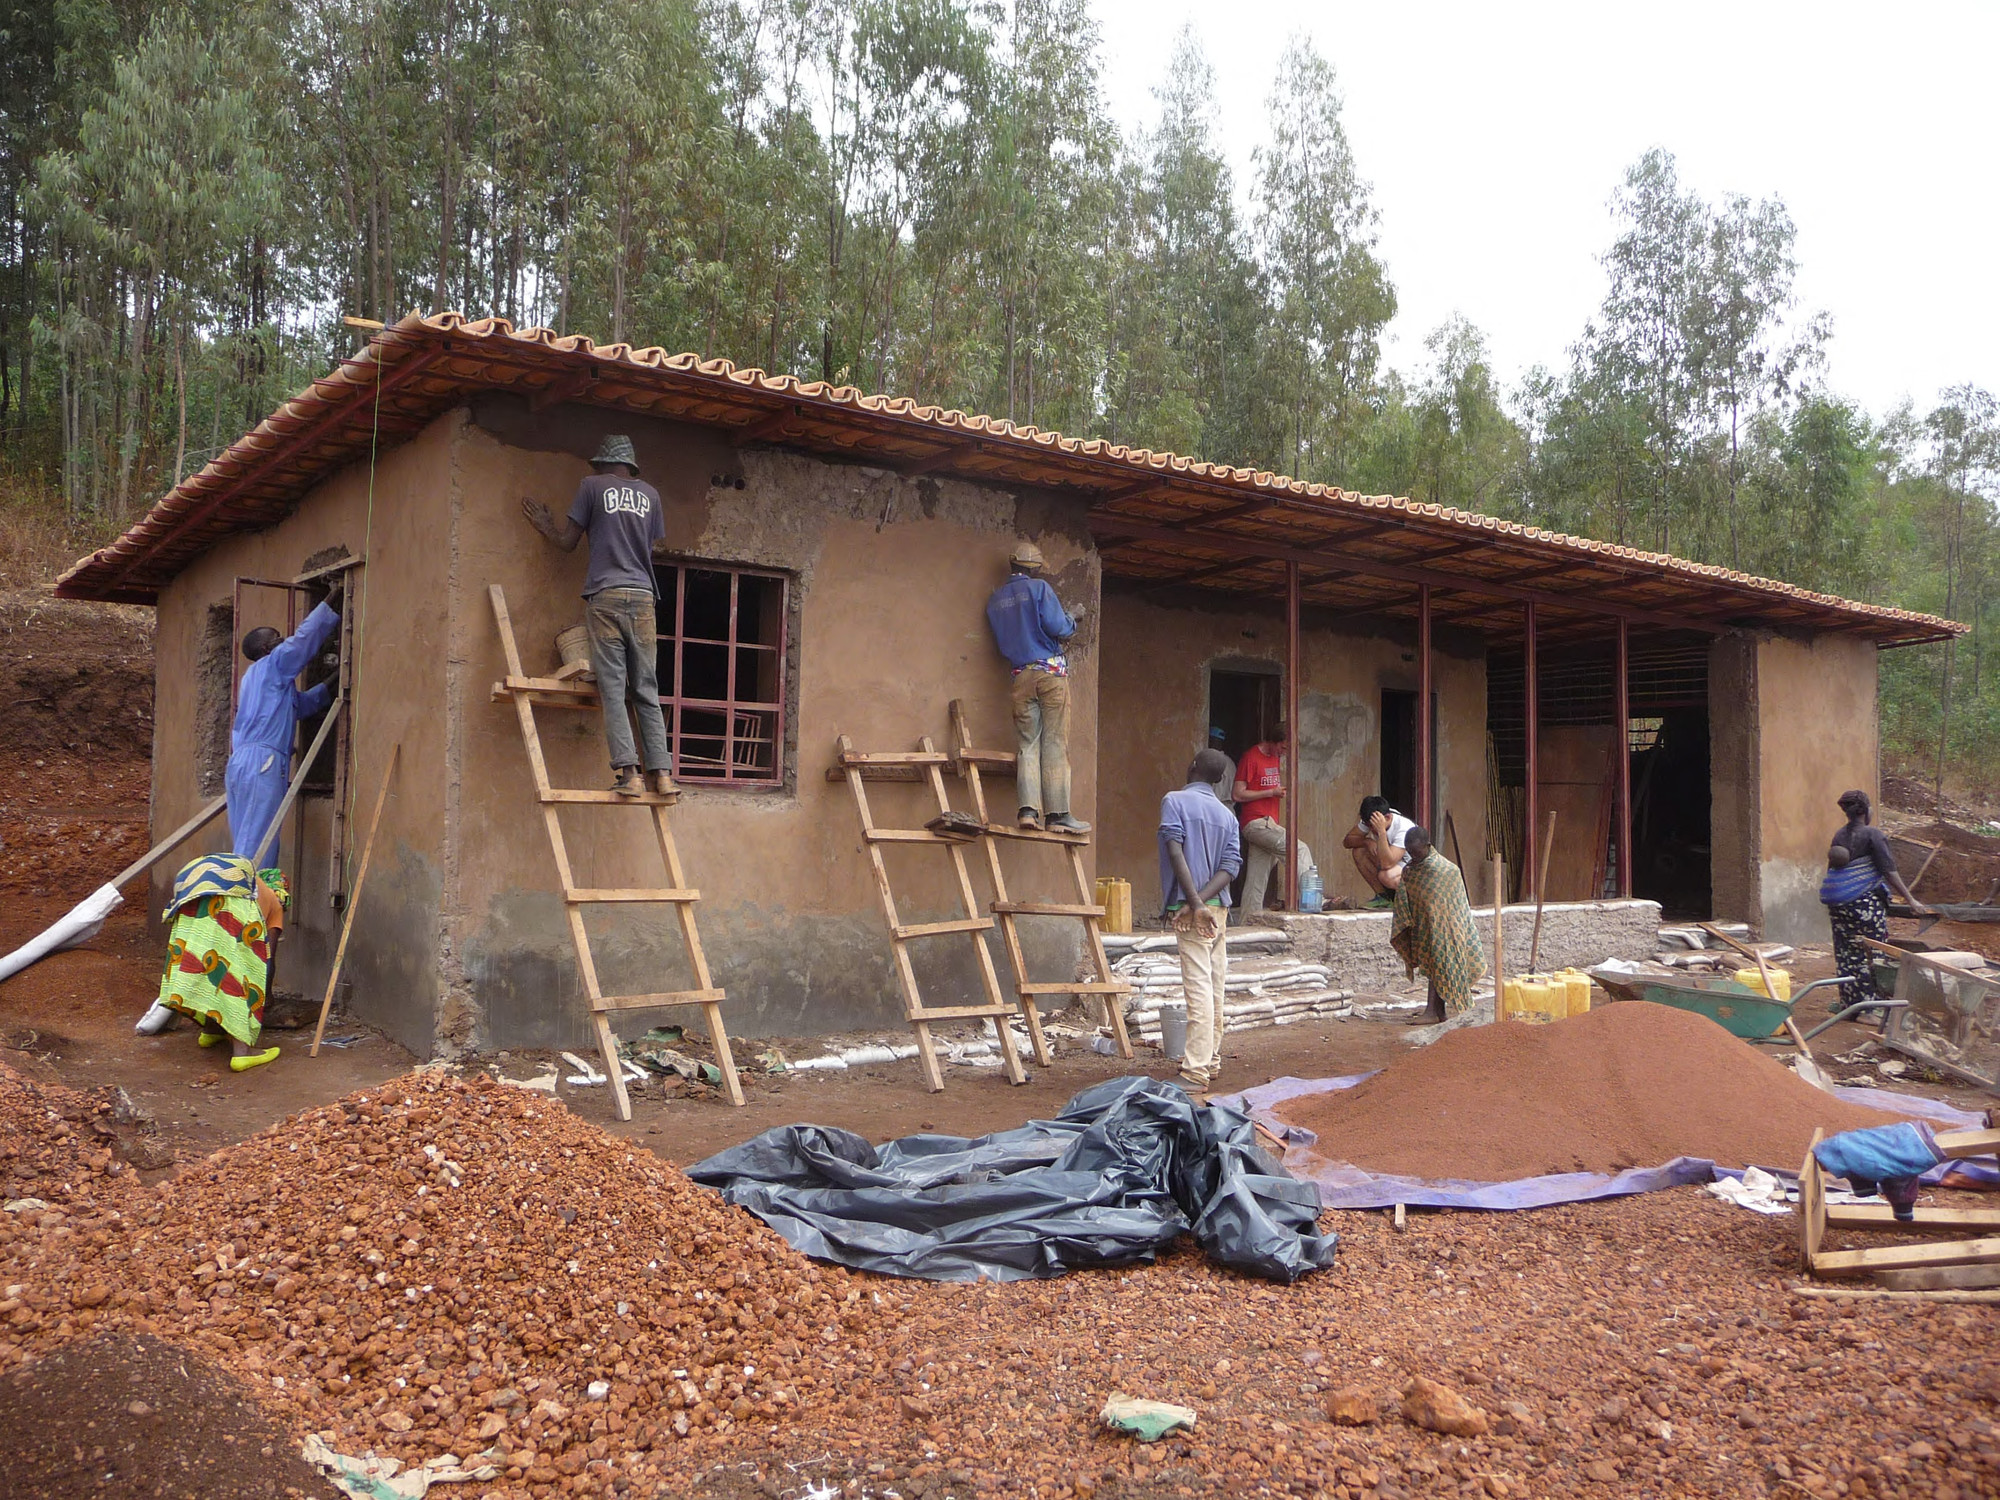 The dissemination of earthbag building techniques to the general public was an important goal for the designers, GA Collaborative. They envision an open-source construction manual that describes the method step-by-step. Image © Jamie Setzler